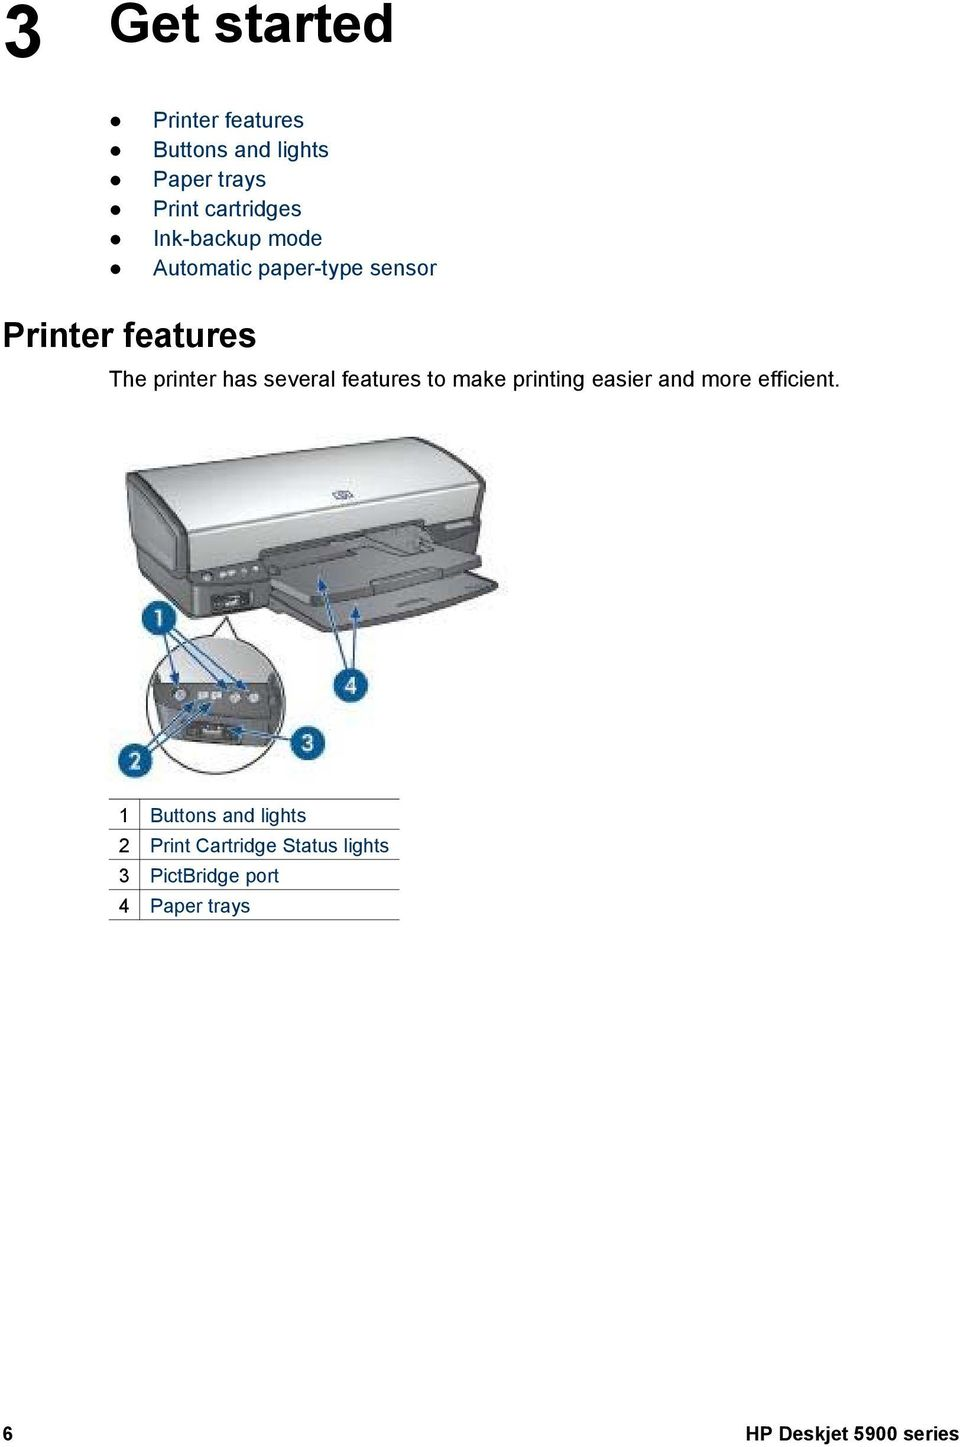 several features to make printing easier and more efficient.